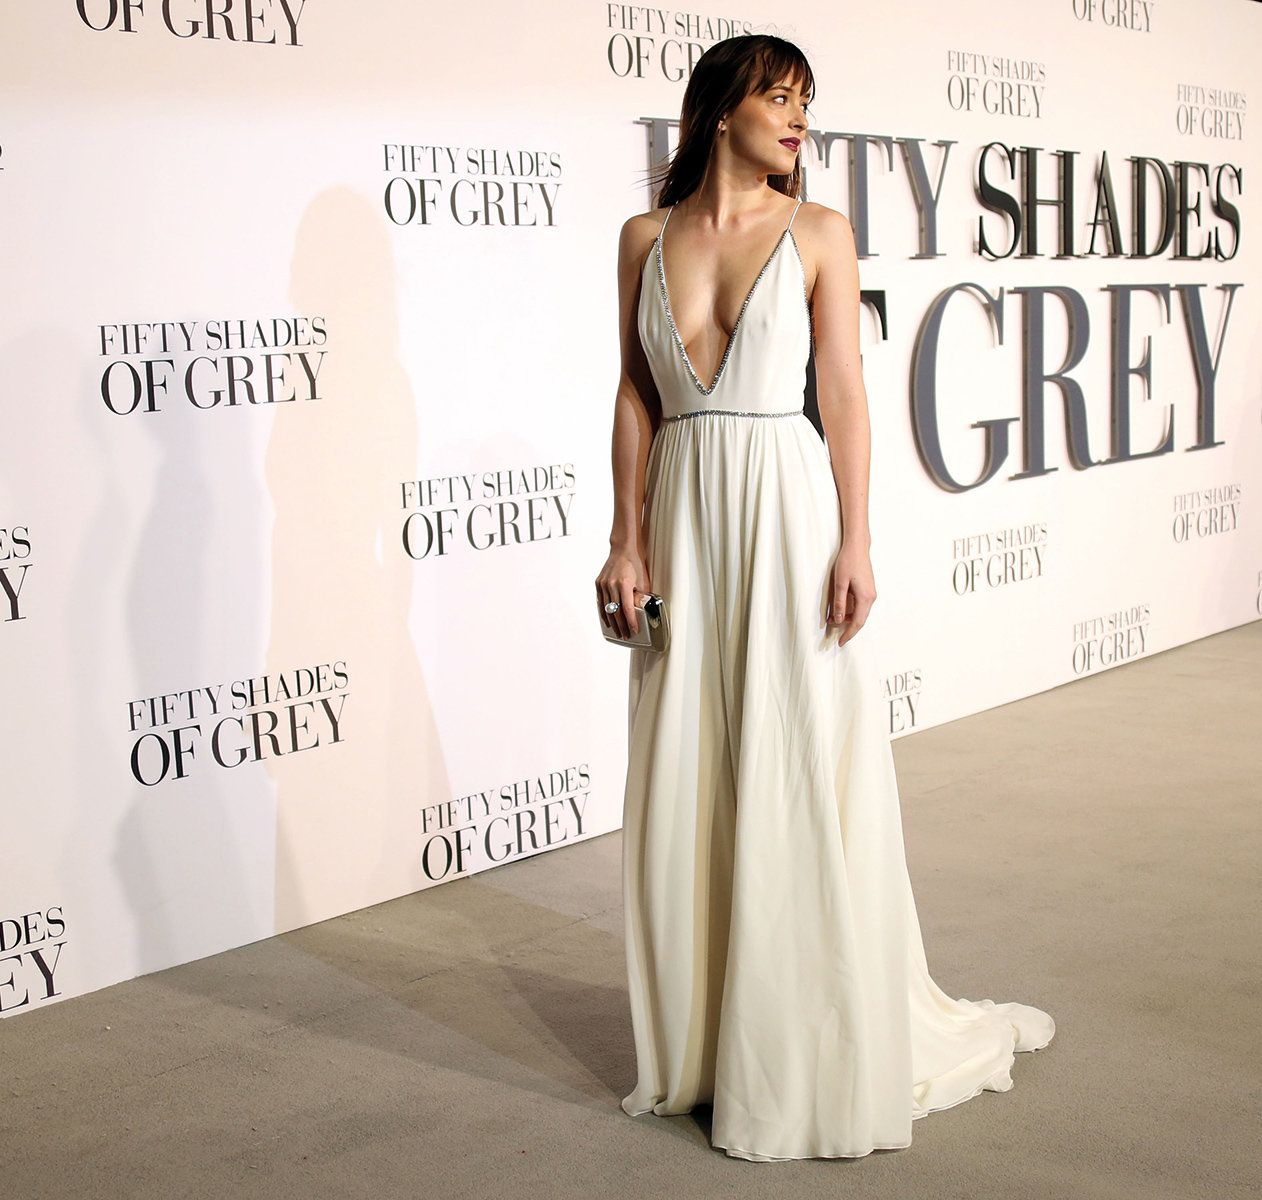 The Fifty Shades of Grey London Premiere – Vogue